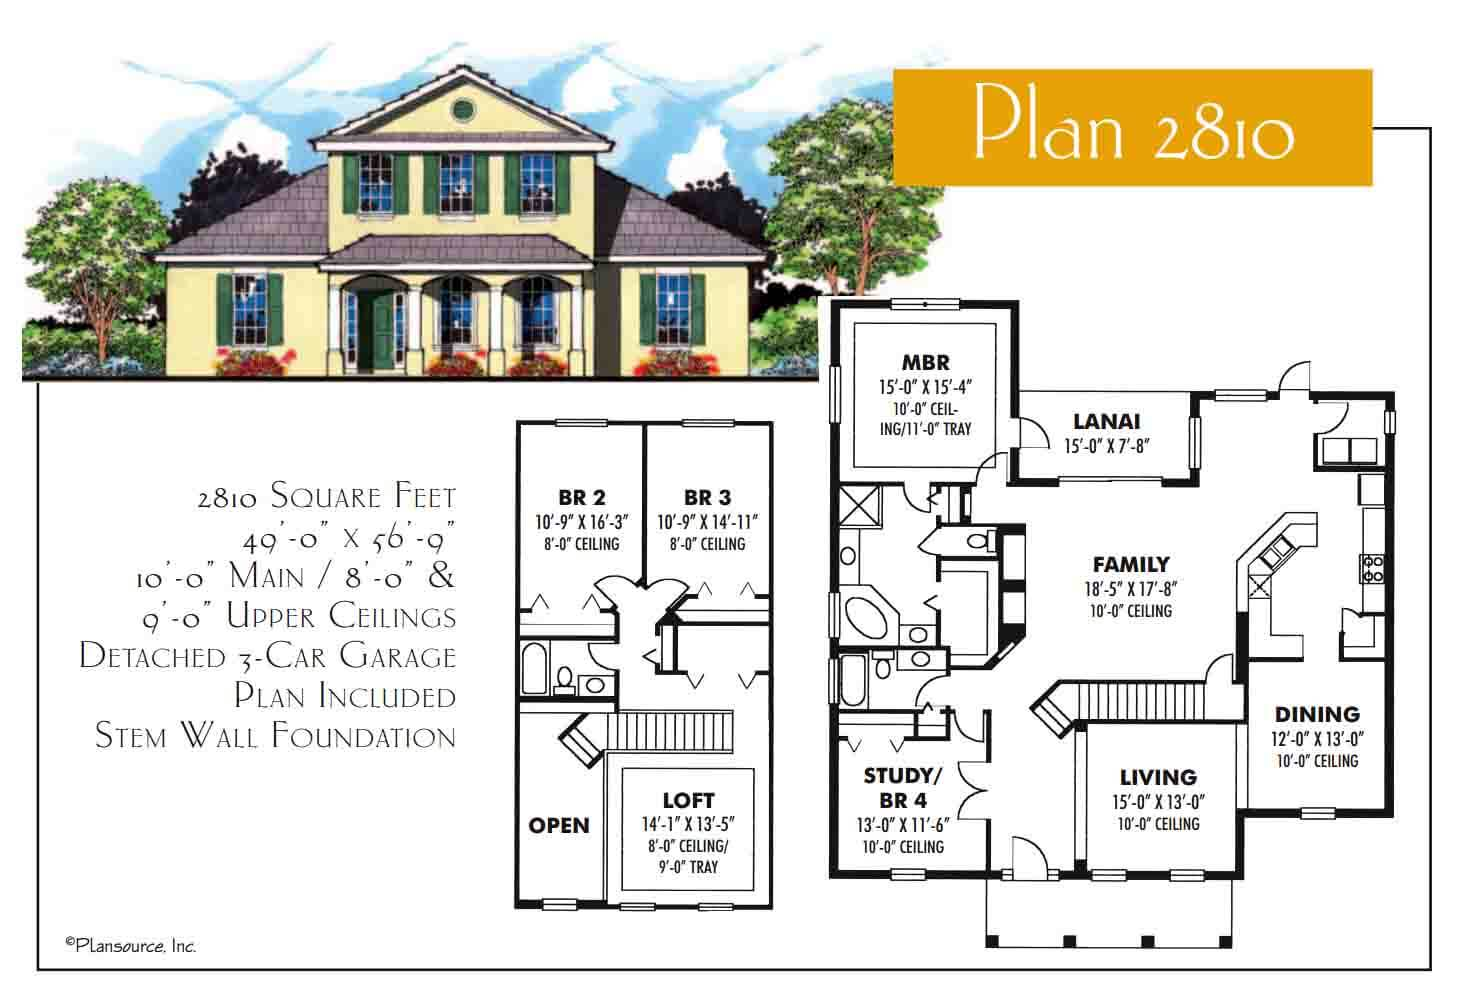 Floor Plans,2,501 SQ FT TO 3,000 SQ FT,1072